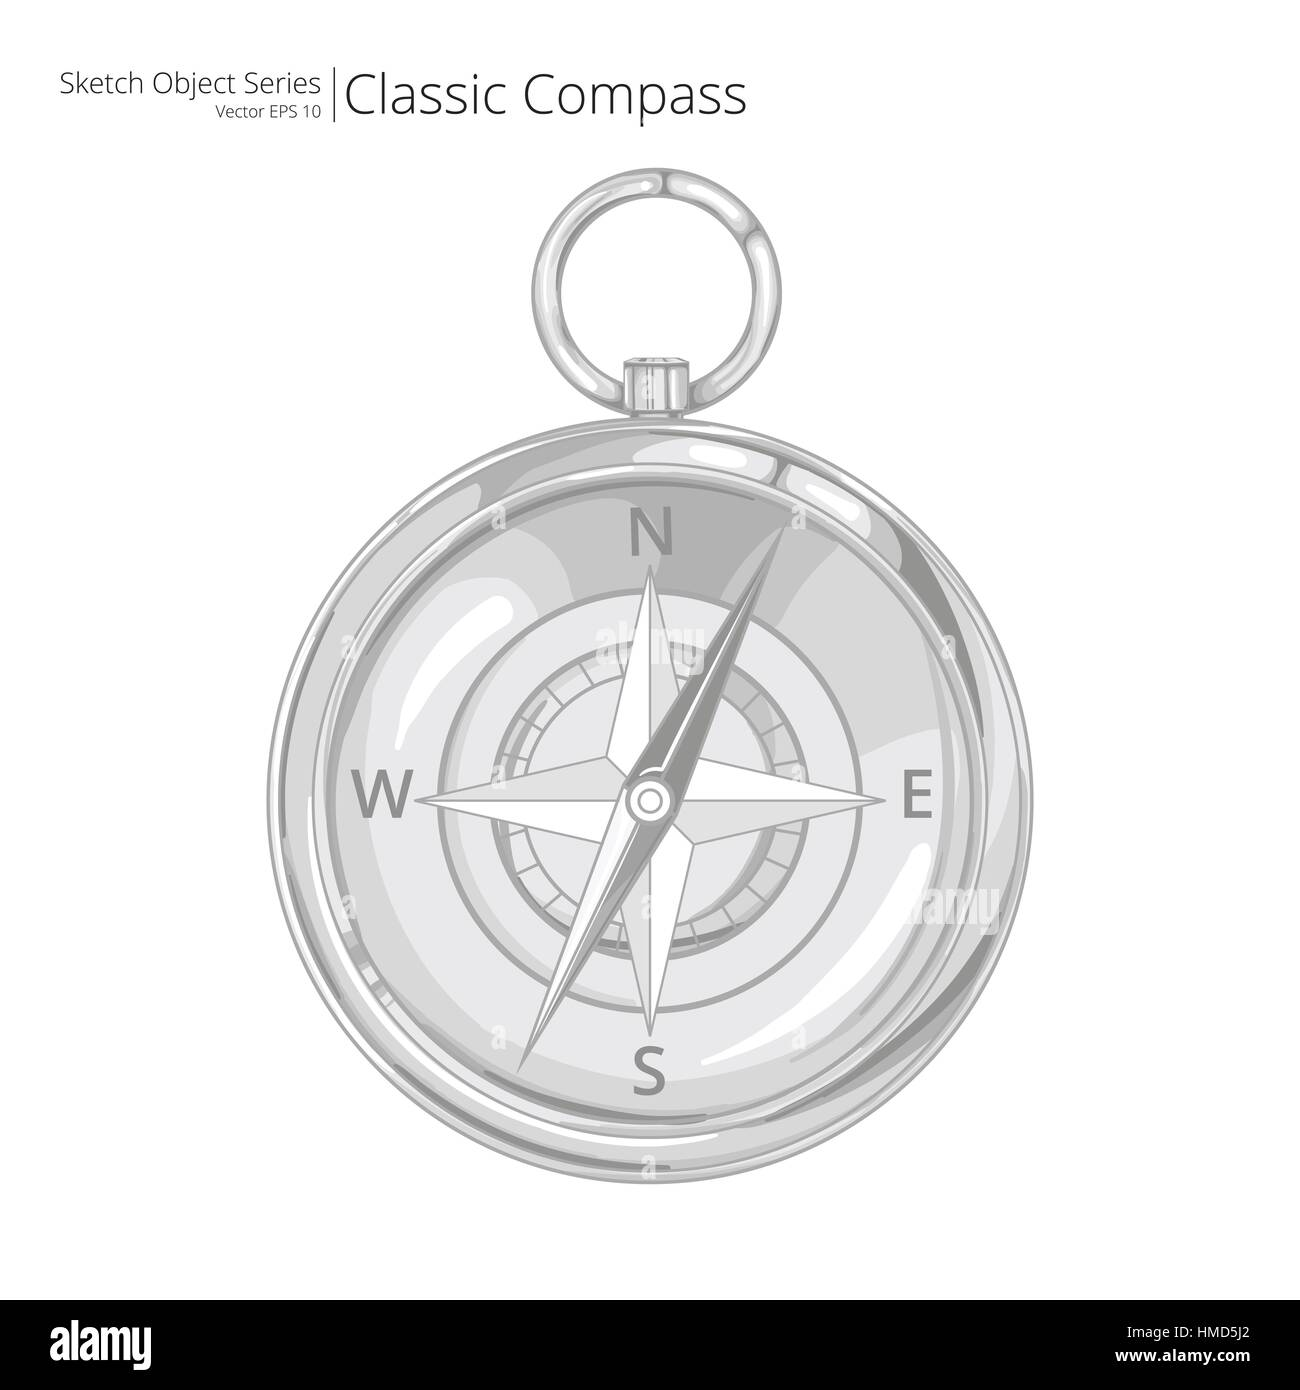 Sketch style Vector Illustration of a Compass. - Stock Image